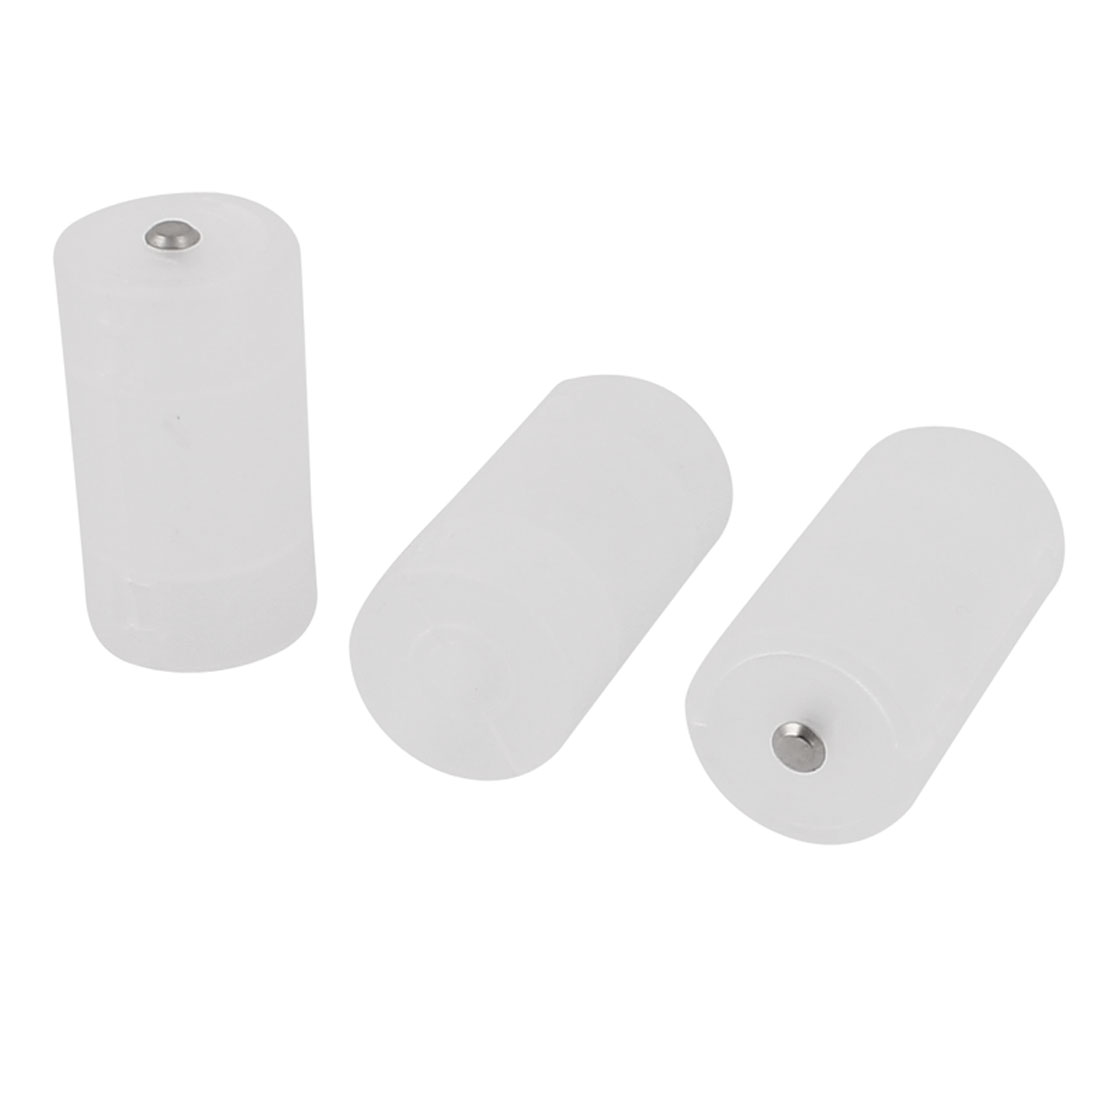 White Plastic Cell Battery Converter AA to D Size Adaptor Holder Case 3Pcs